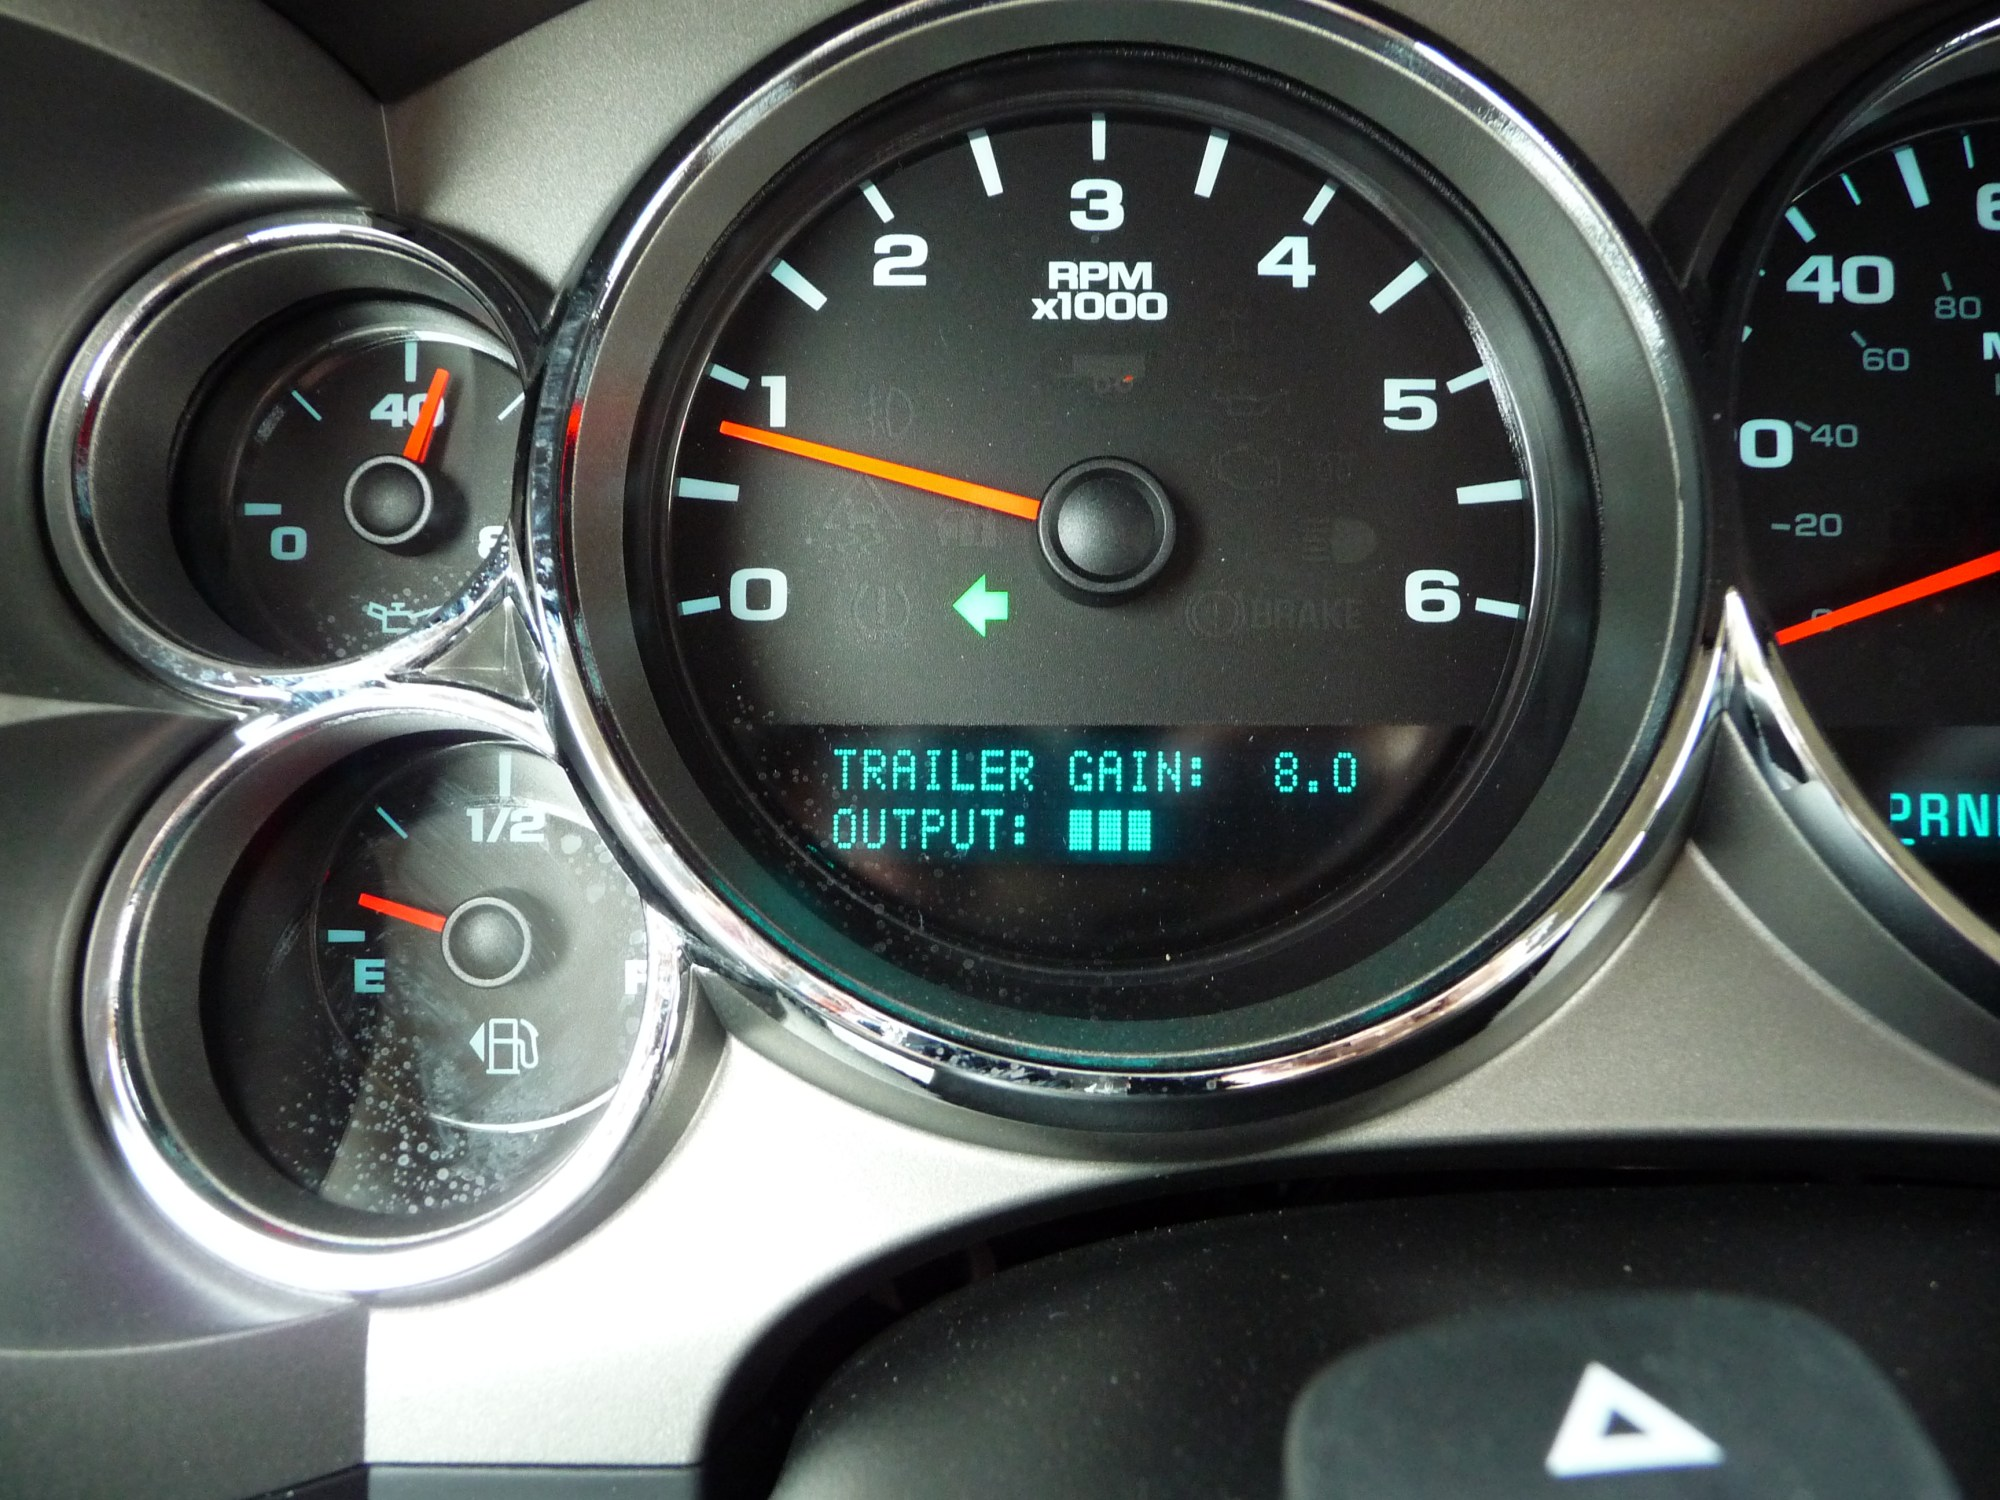 hight resolution of trailer gain scale built into the dash i run gain around 8